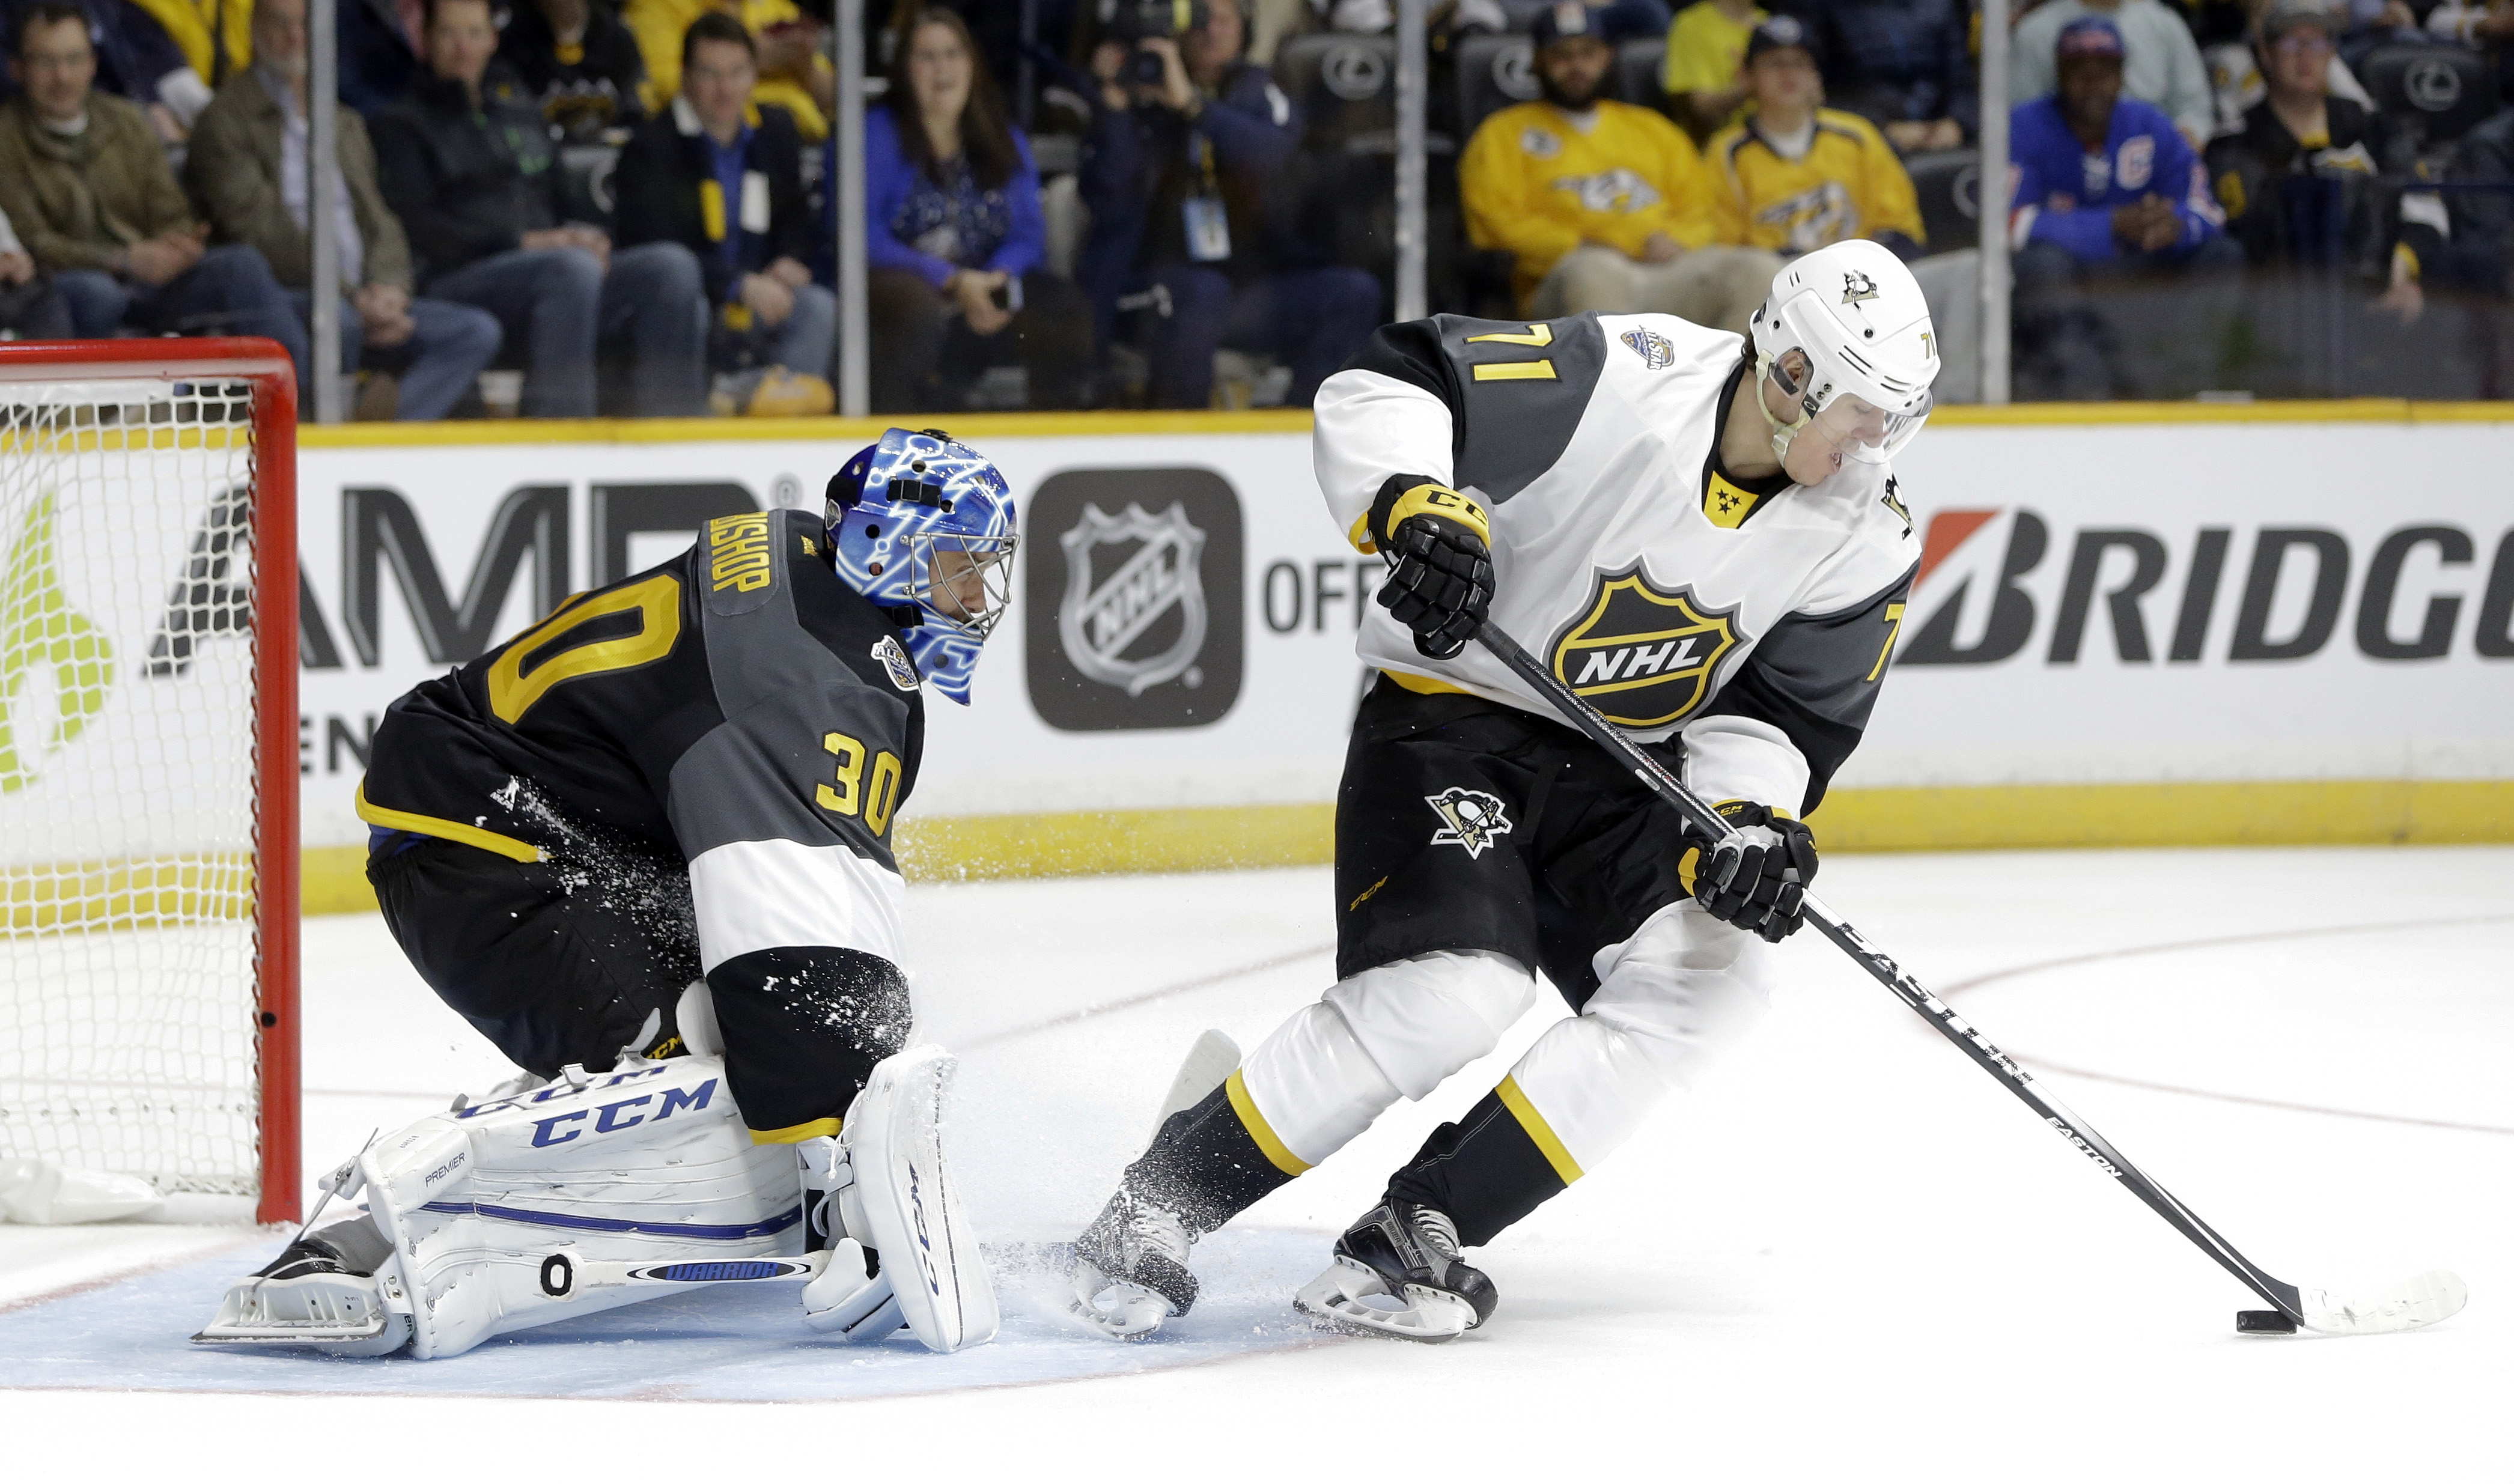 Metropolitan Division forward Evgeni Malkin (71), of the Pittsburgh Penguins, scores a goal against Atlantic Division goalie Ben Bishop (30), of the Tampa Bay Lightning, on a backhanded shot during an NHL hockey All-Star semifinal round game Sunday, Jan.